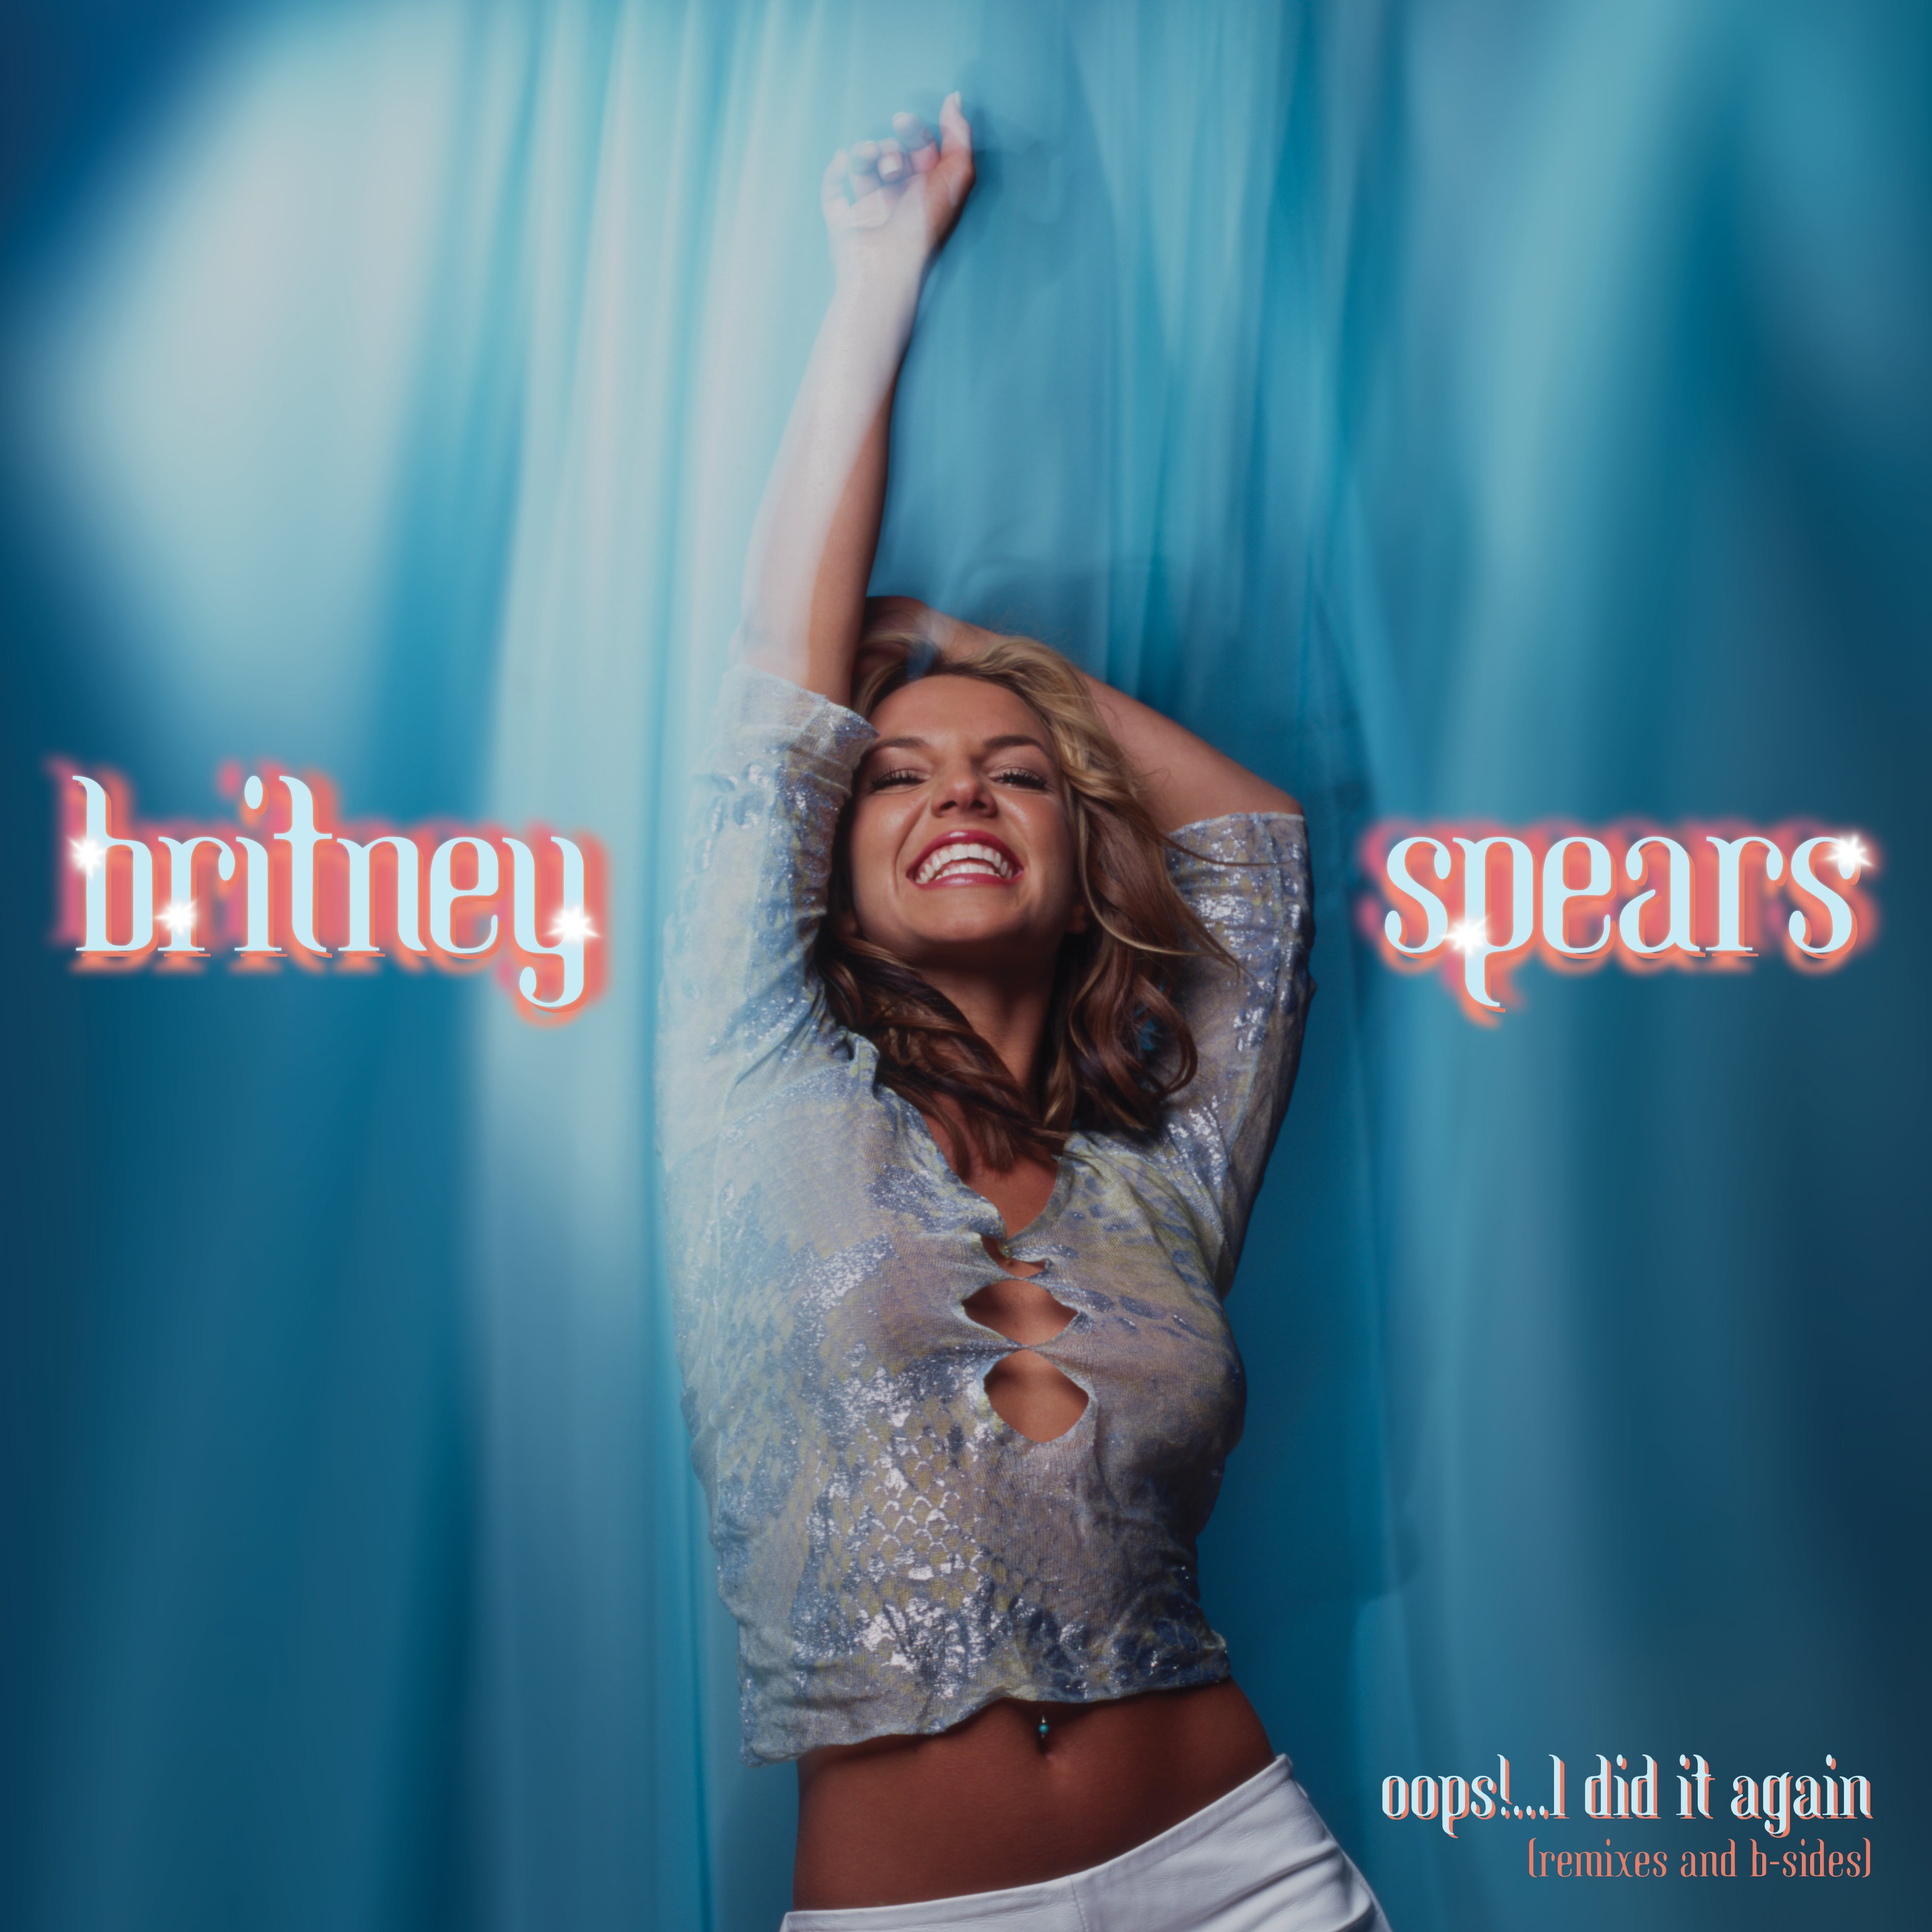 Britney Spears - Oops! I Did It Again (RSD 2020 Drop Two) Baby Blue Colour Vinyl Record